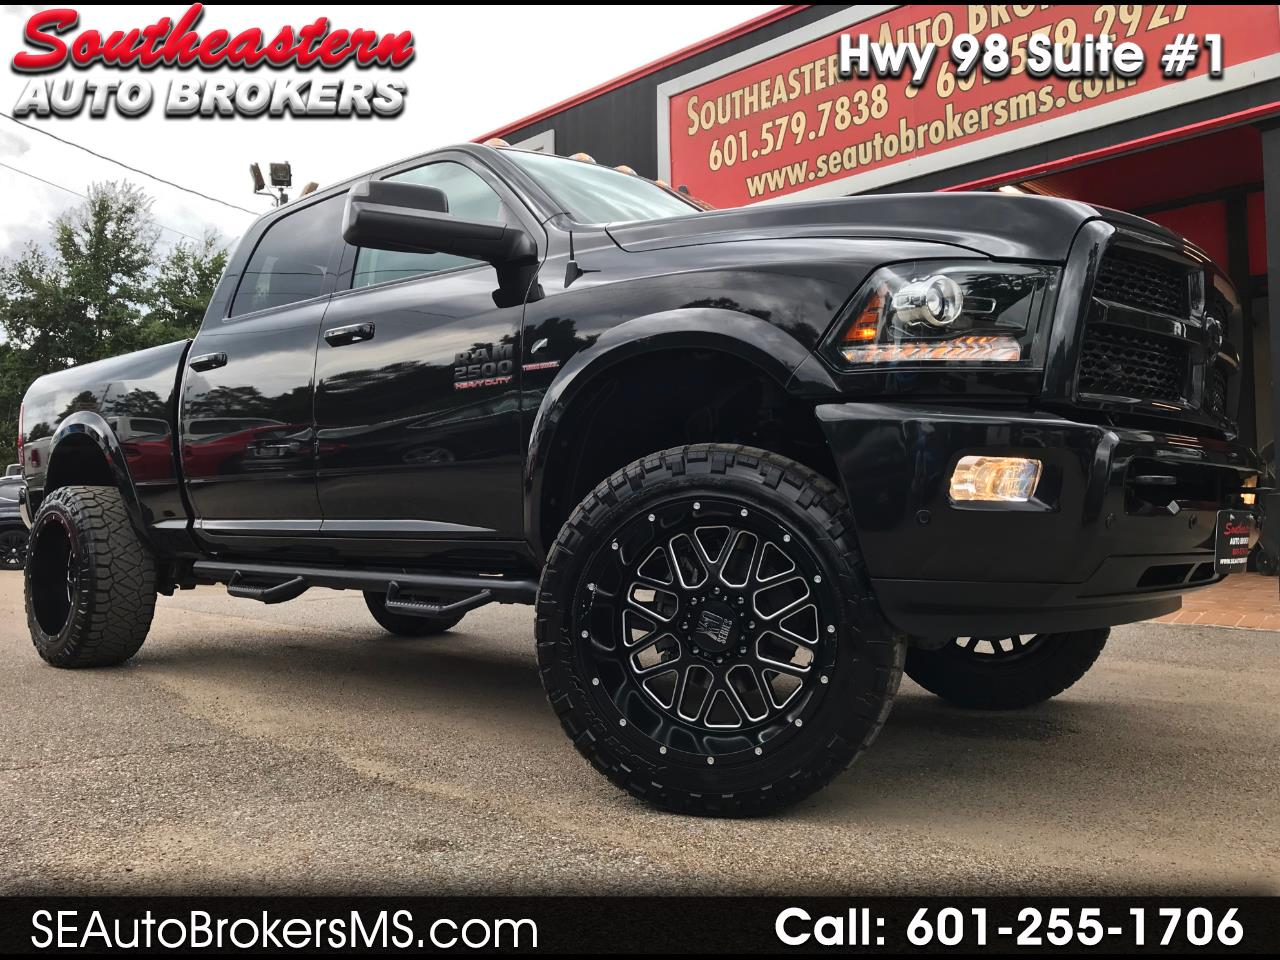 2017 RAM 2500 LARAMIE CREW CAB SHORT BED 4WD CUSTOM LIFTED